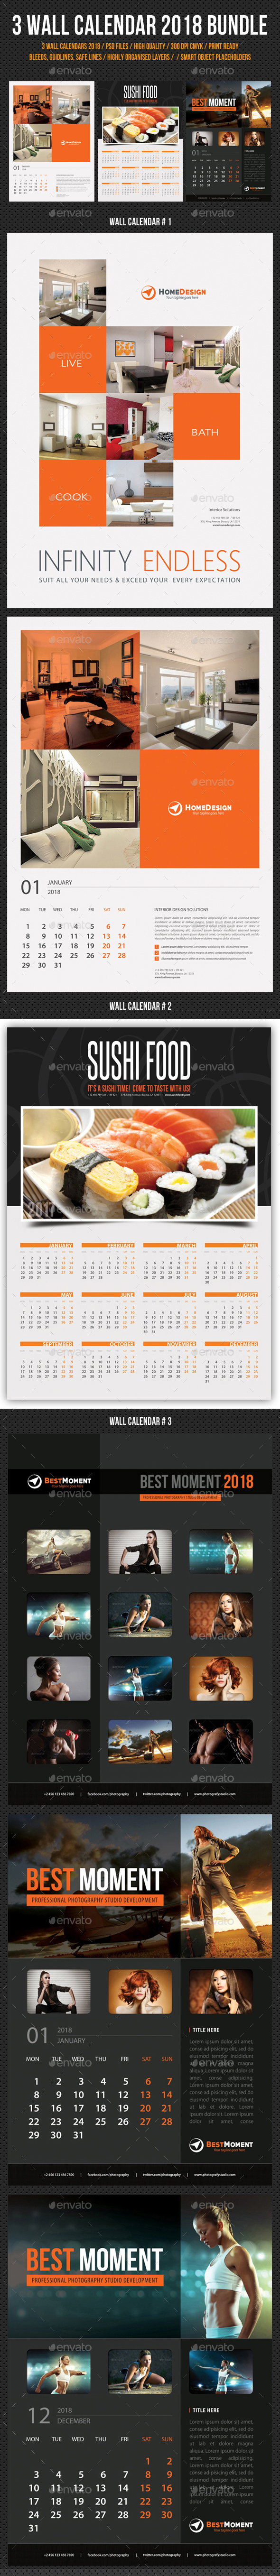 3 in 1 Wall Calendar 2018 Bundle V06 - Calendars Stationery